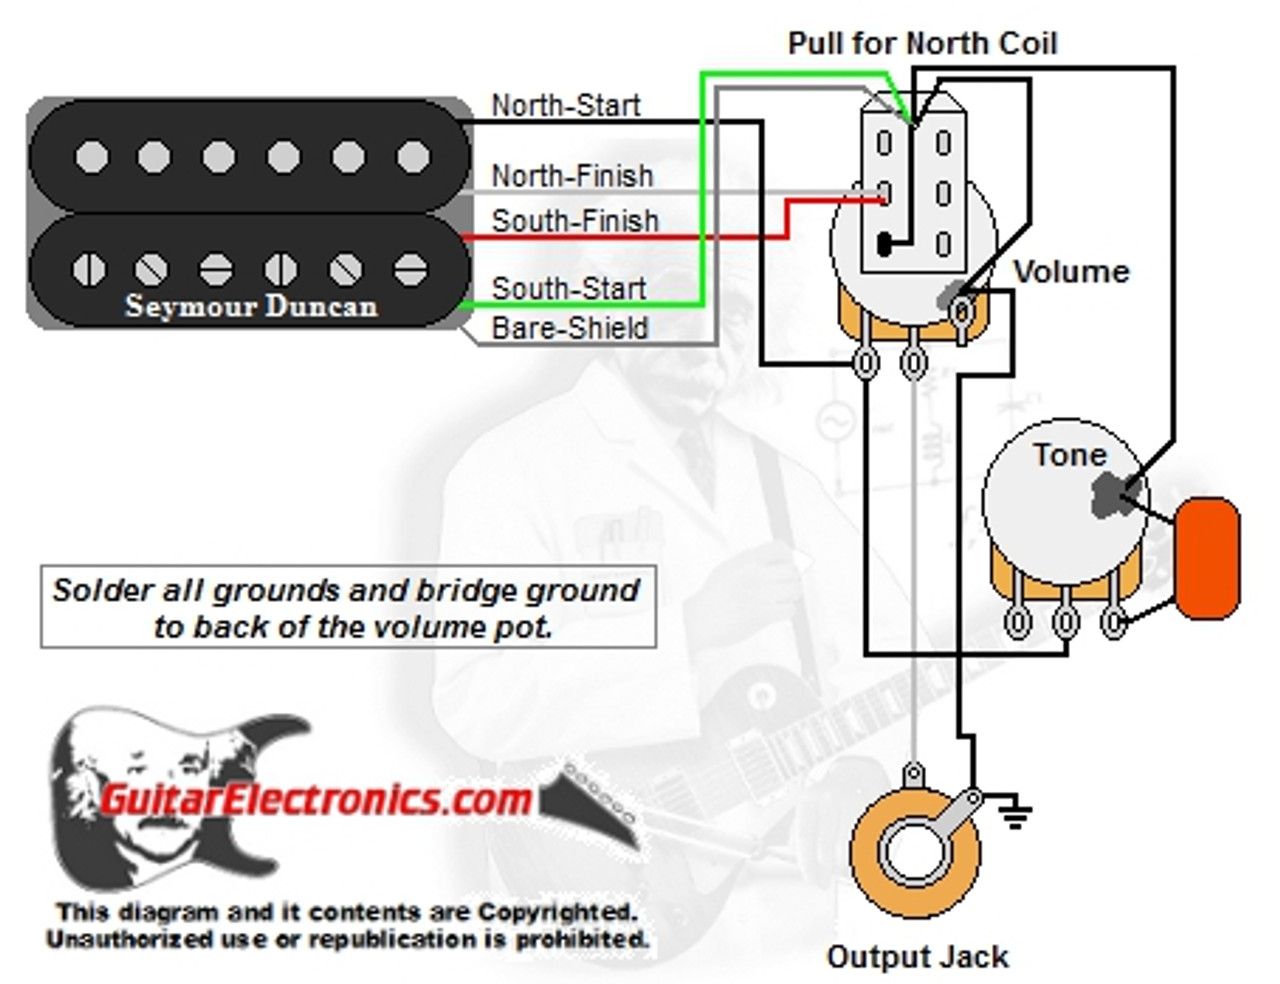 hight resolution of 1 humbucker 1 volume 1tone pull for north single coil guitar wiring diagram 1 humbucker 1 volume 1 humbucker 1 volume wiring